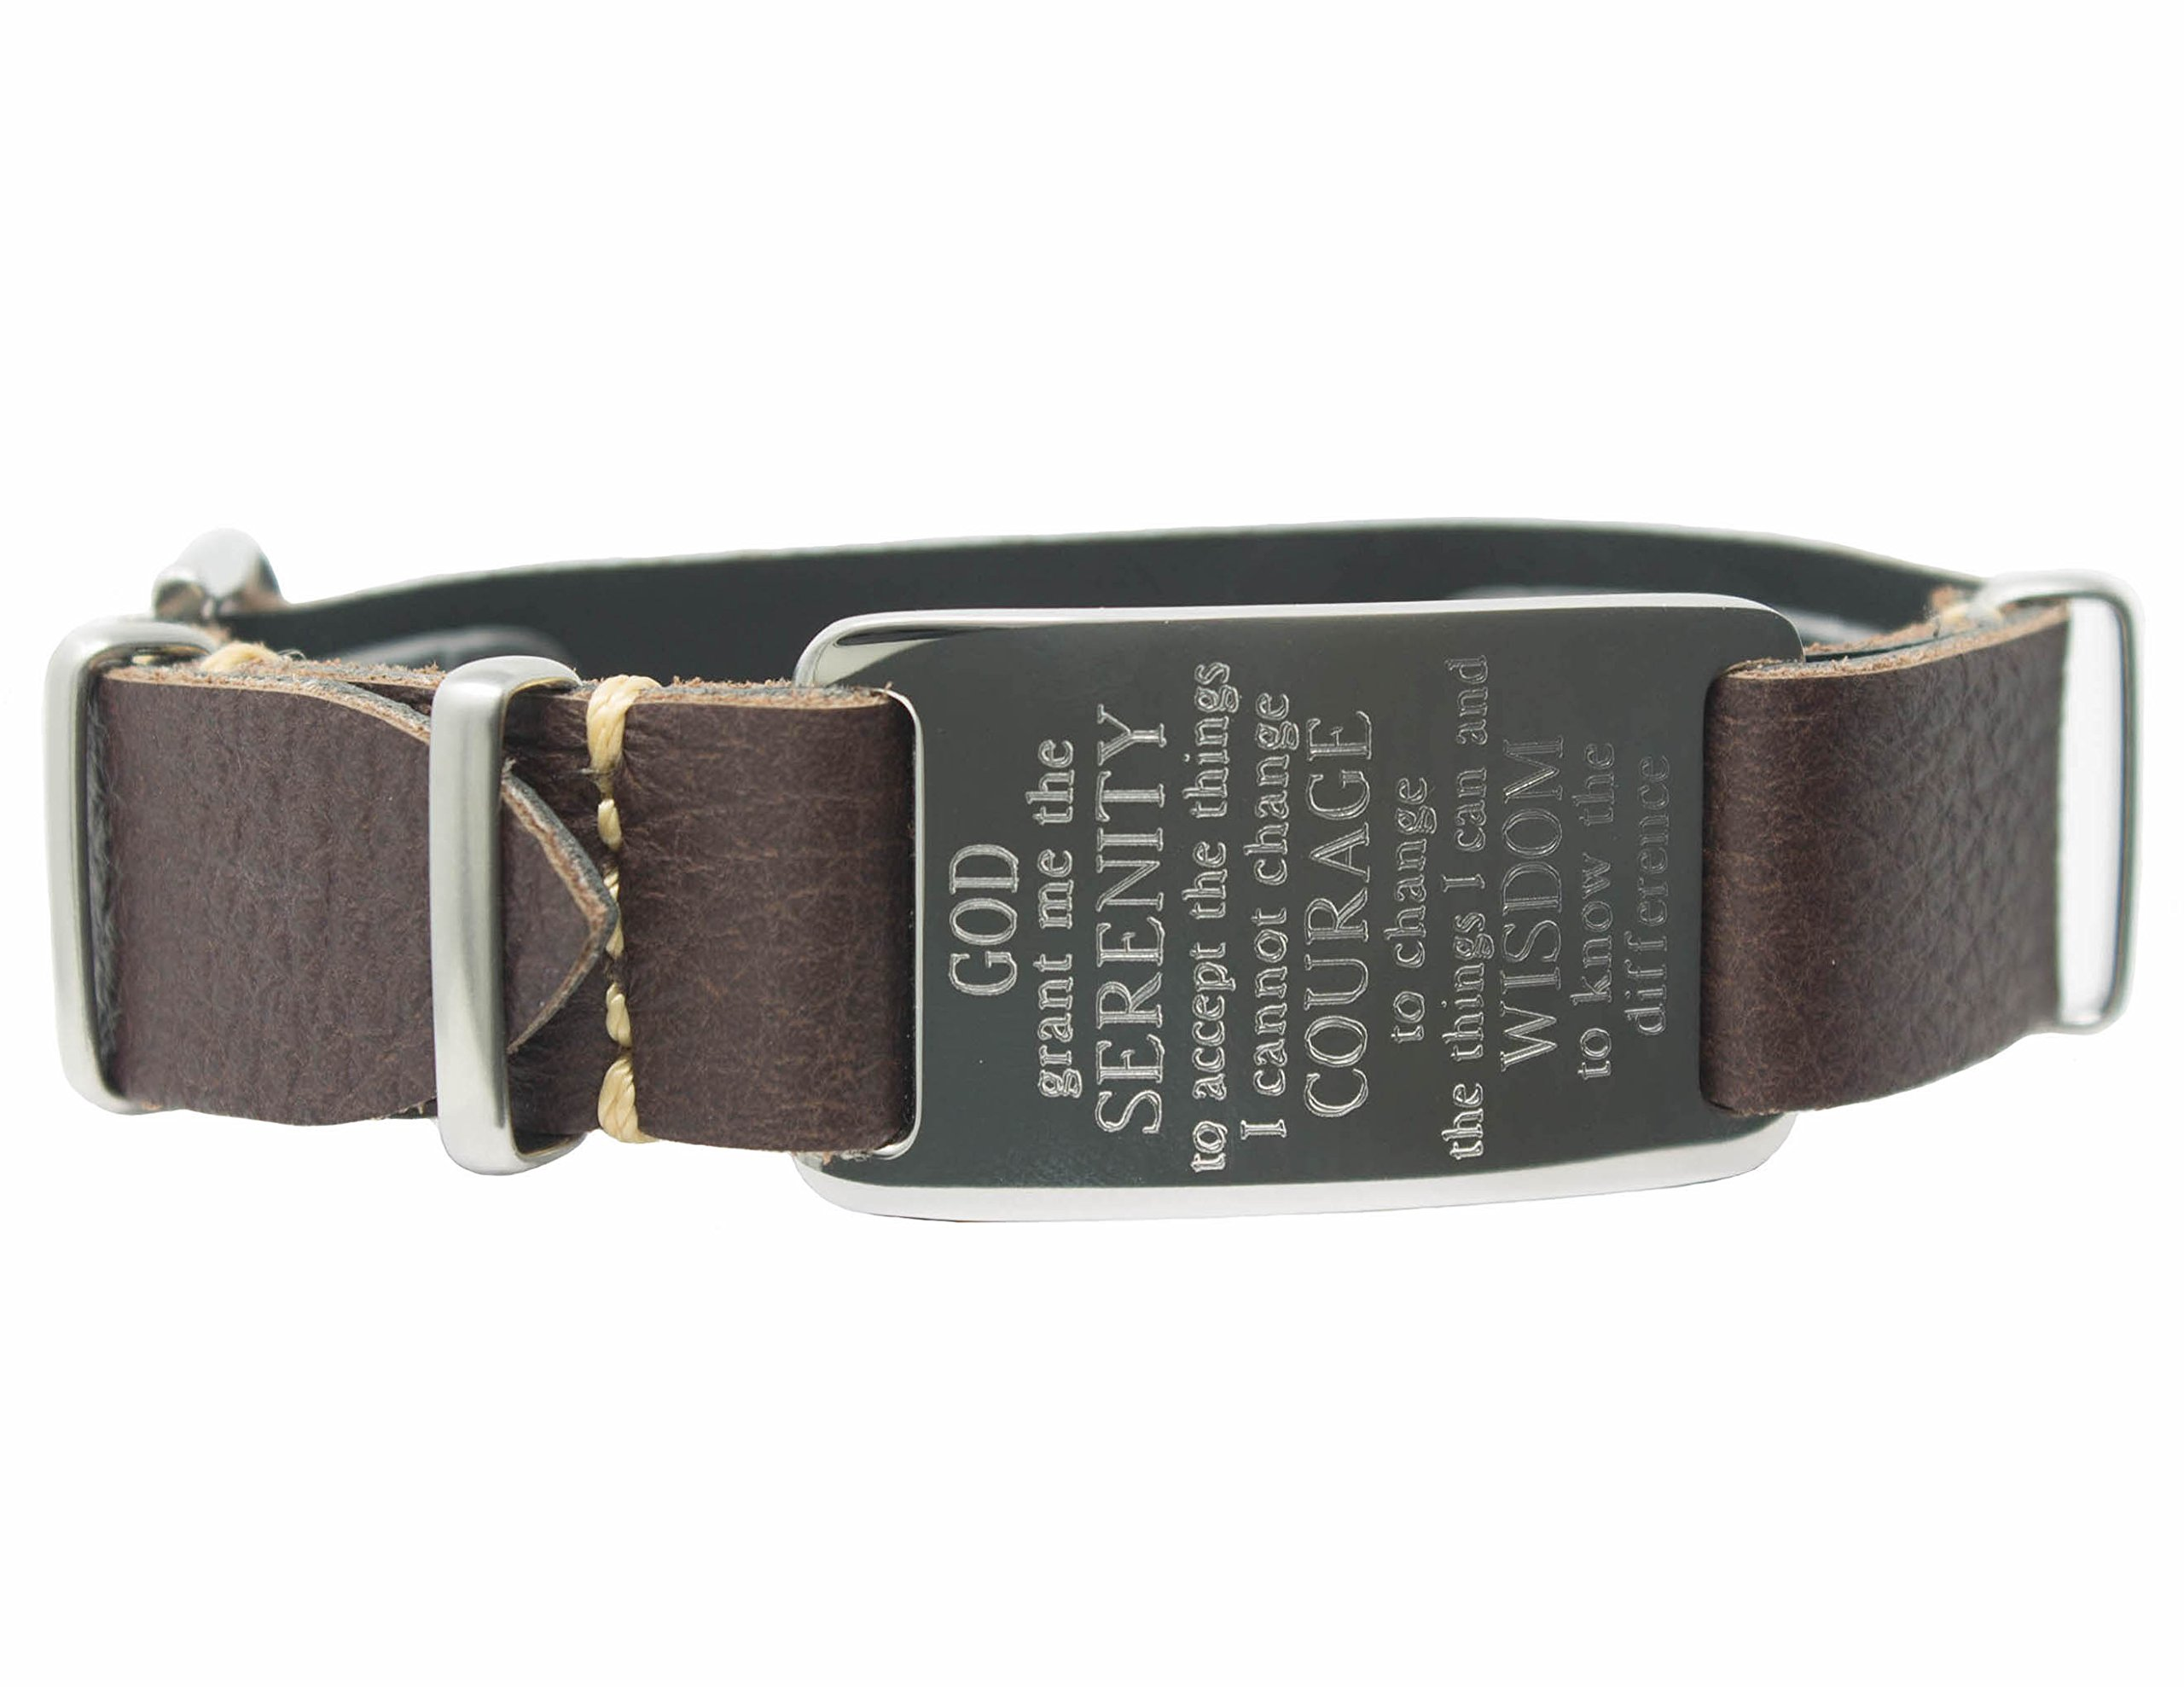 Leather Wrap Bracelet with Serenity Prayer ID Plate (Brown) by Dakota (Image #3)